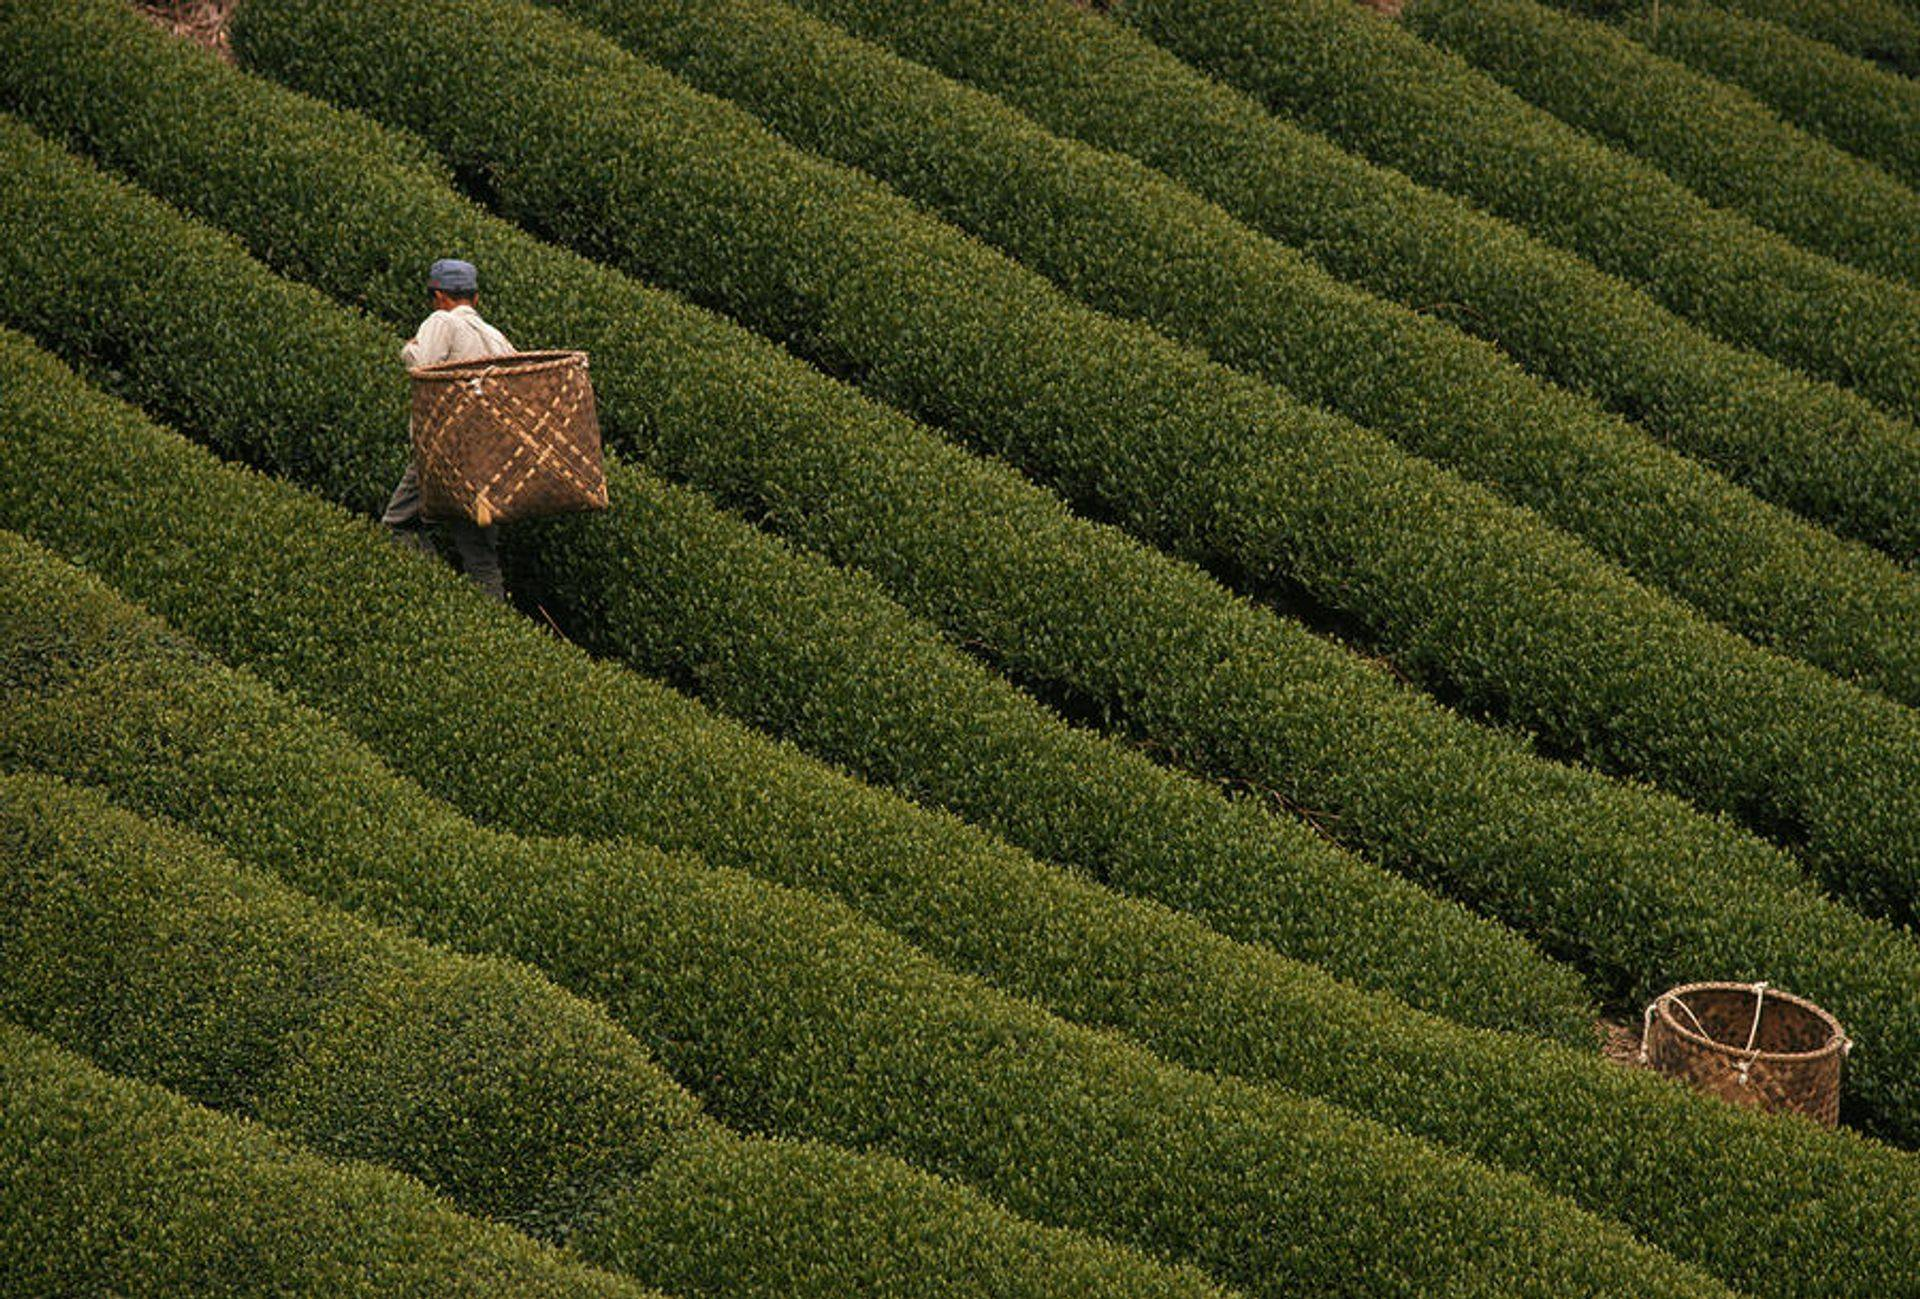 tea plantation, workers